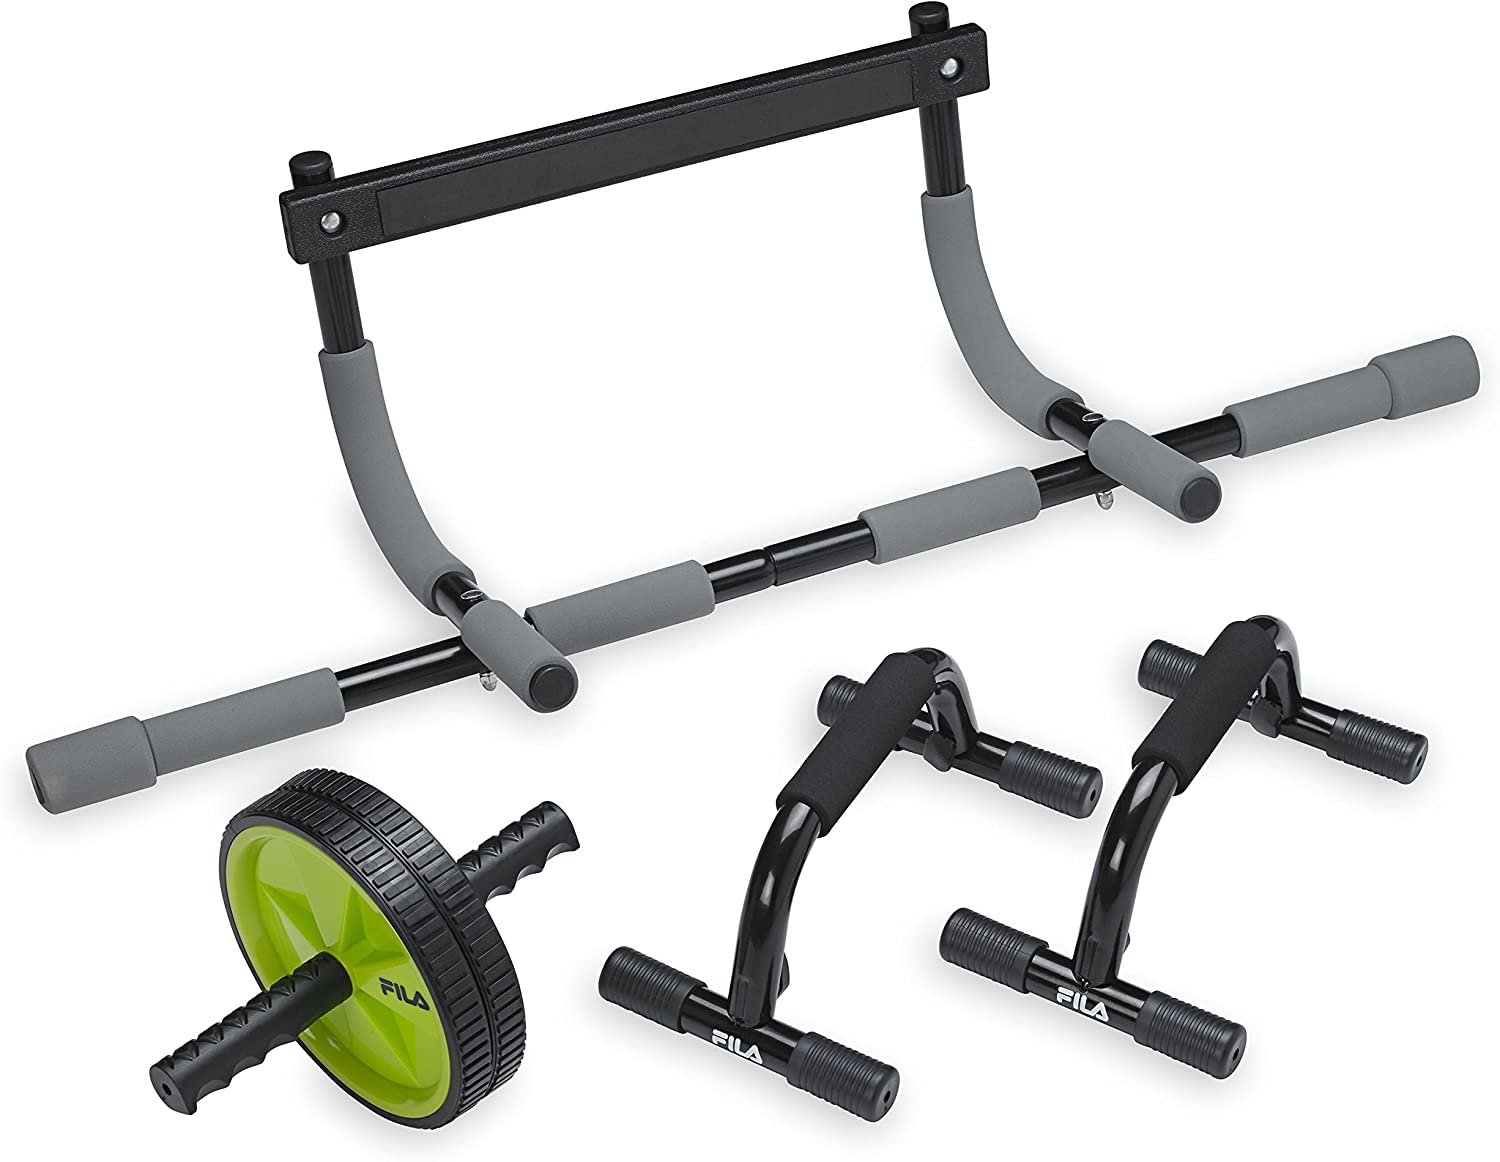 FILA Accessories Home Gym Kit